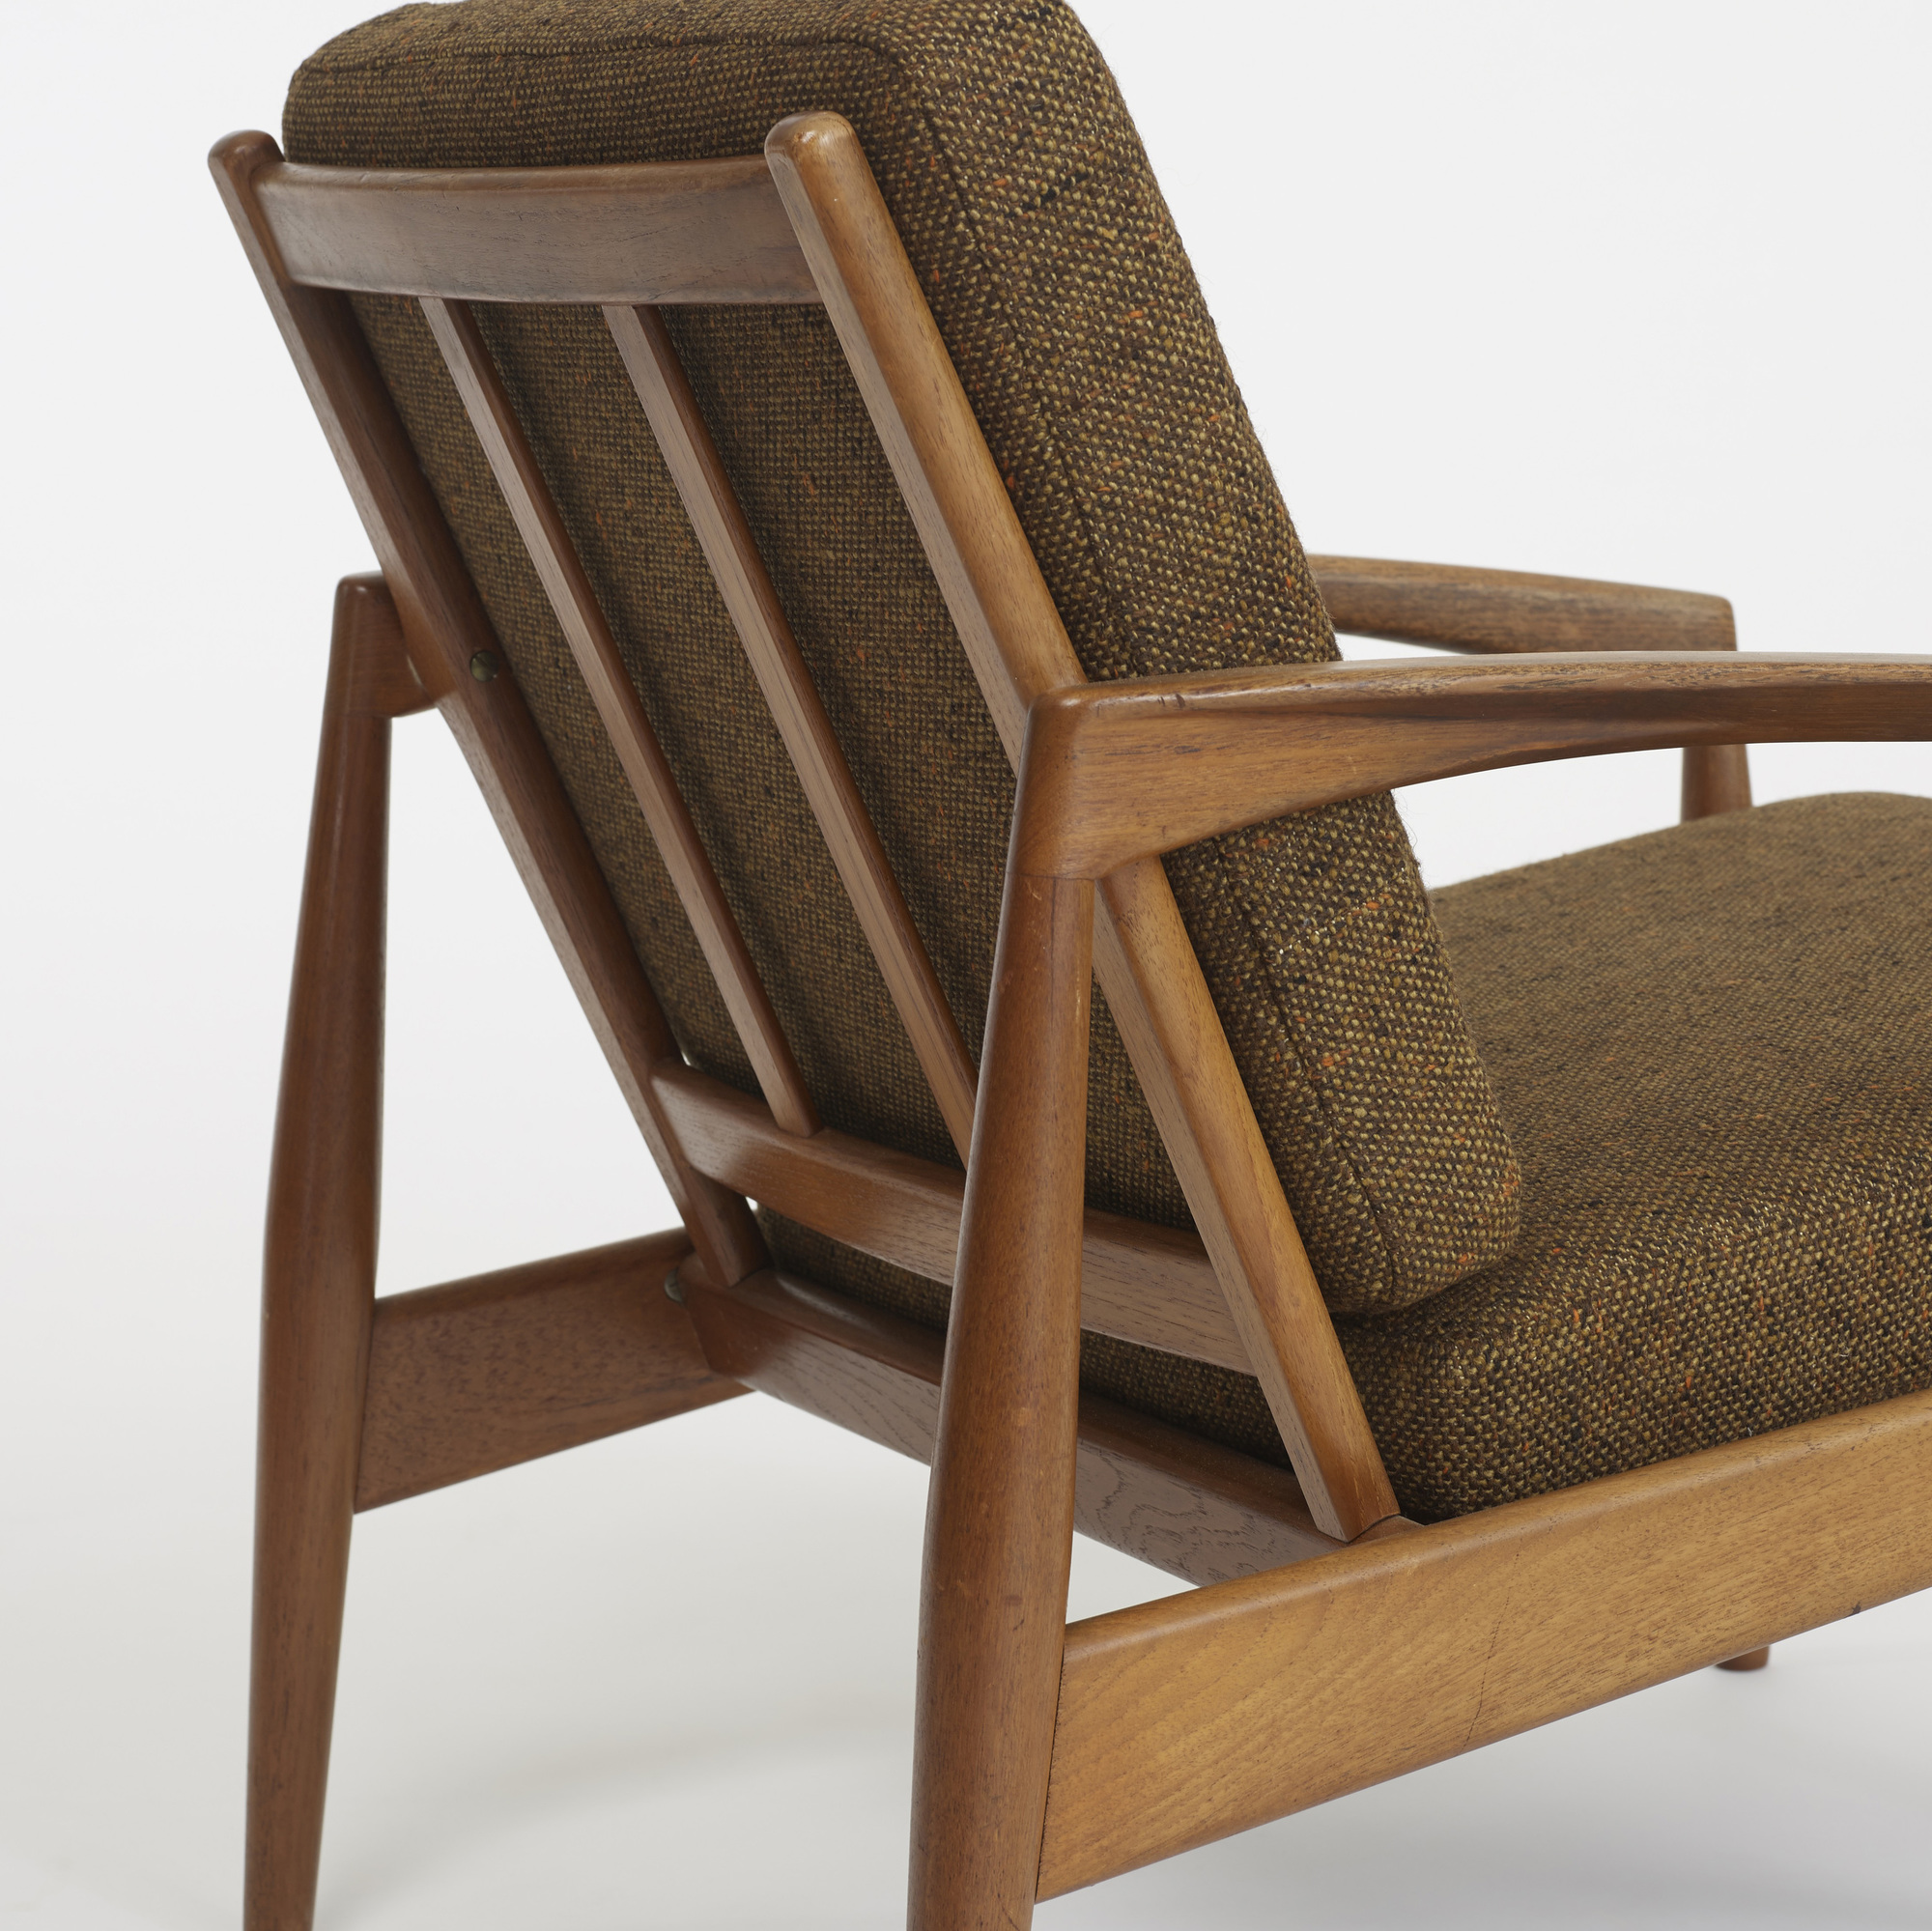 274: Kai Kristiansen / pair of lounge chairs, model 121 (2 of 4)